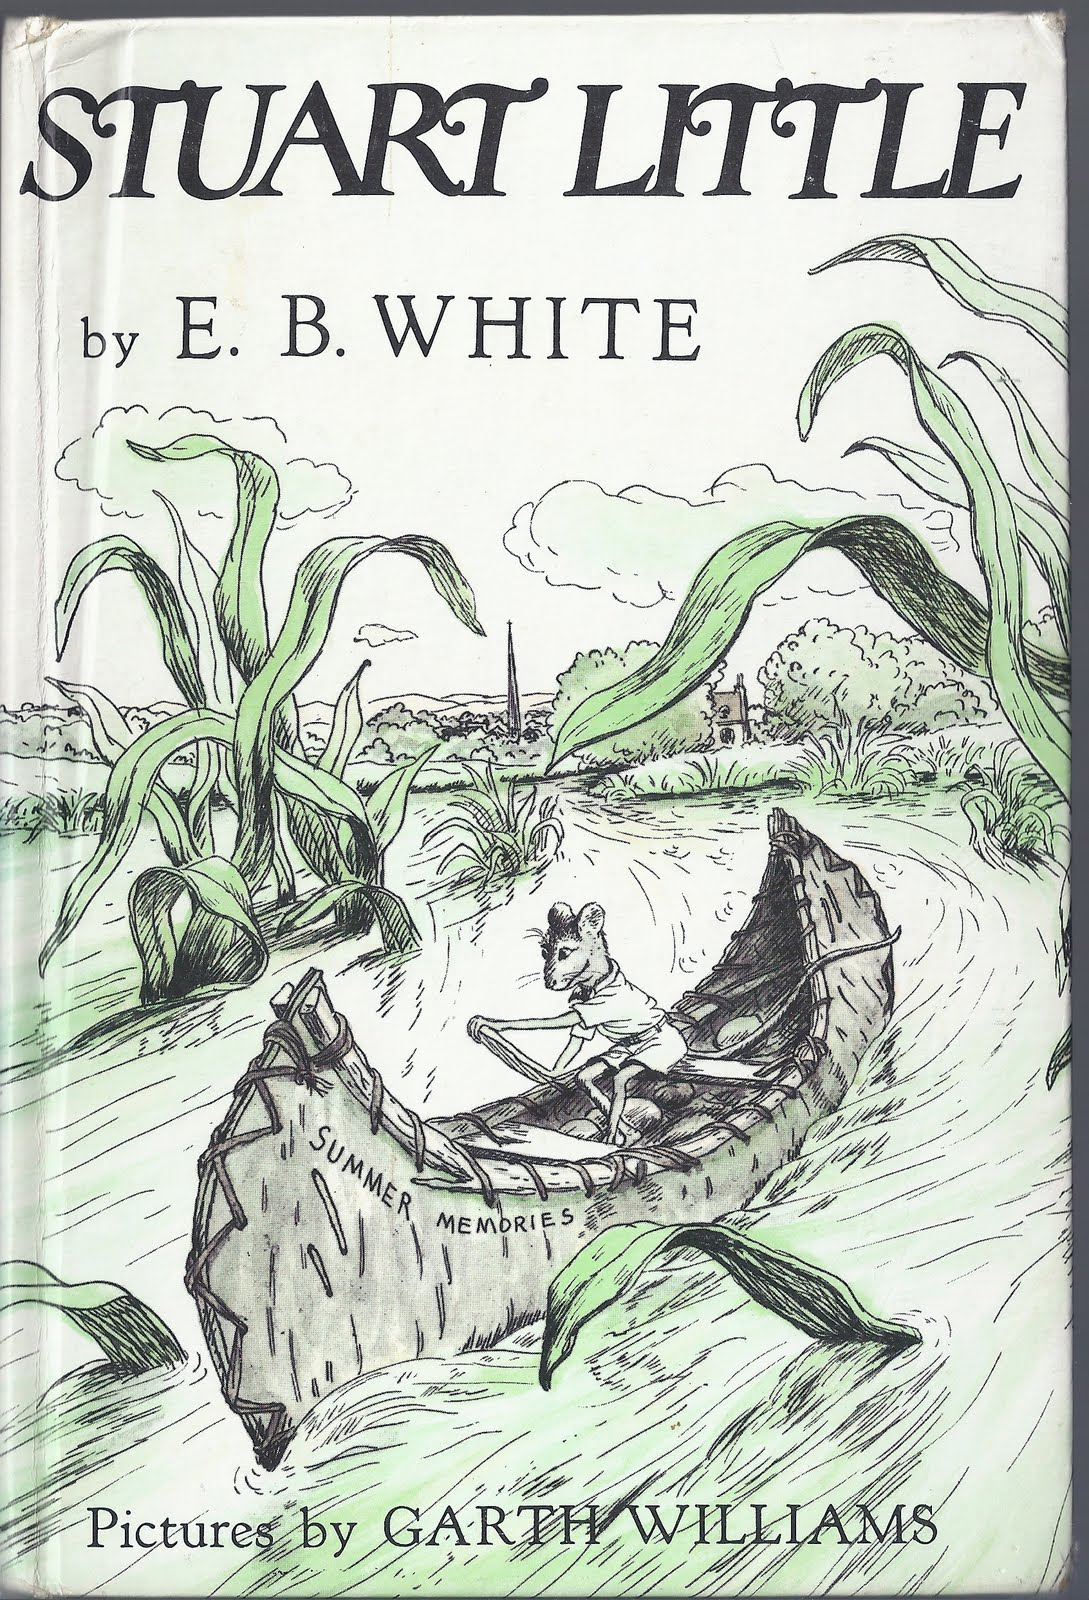 July 11 Today S Birthday In Literature E B White